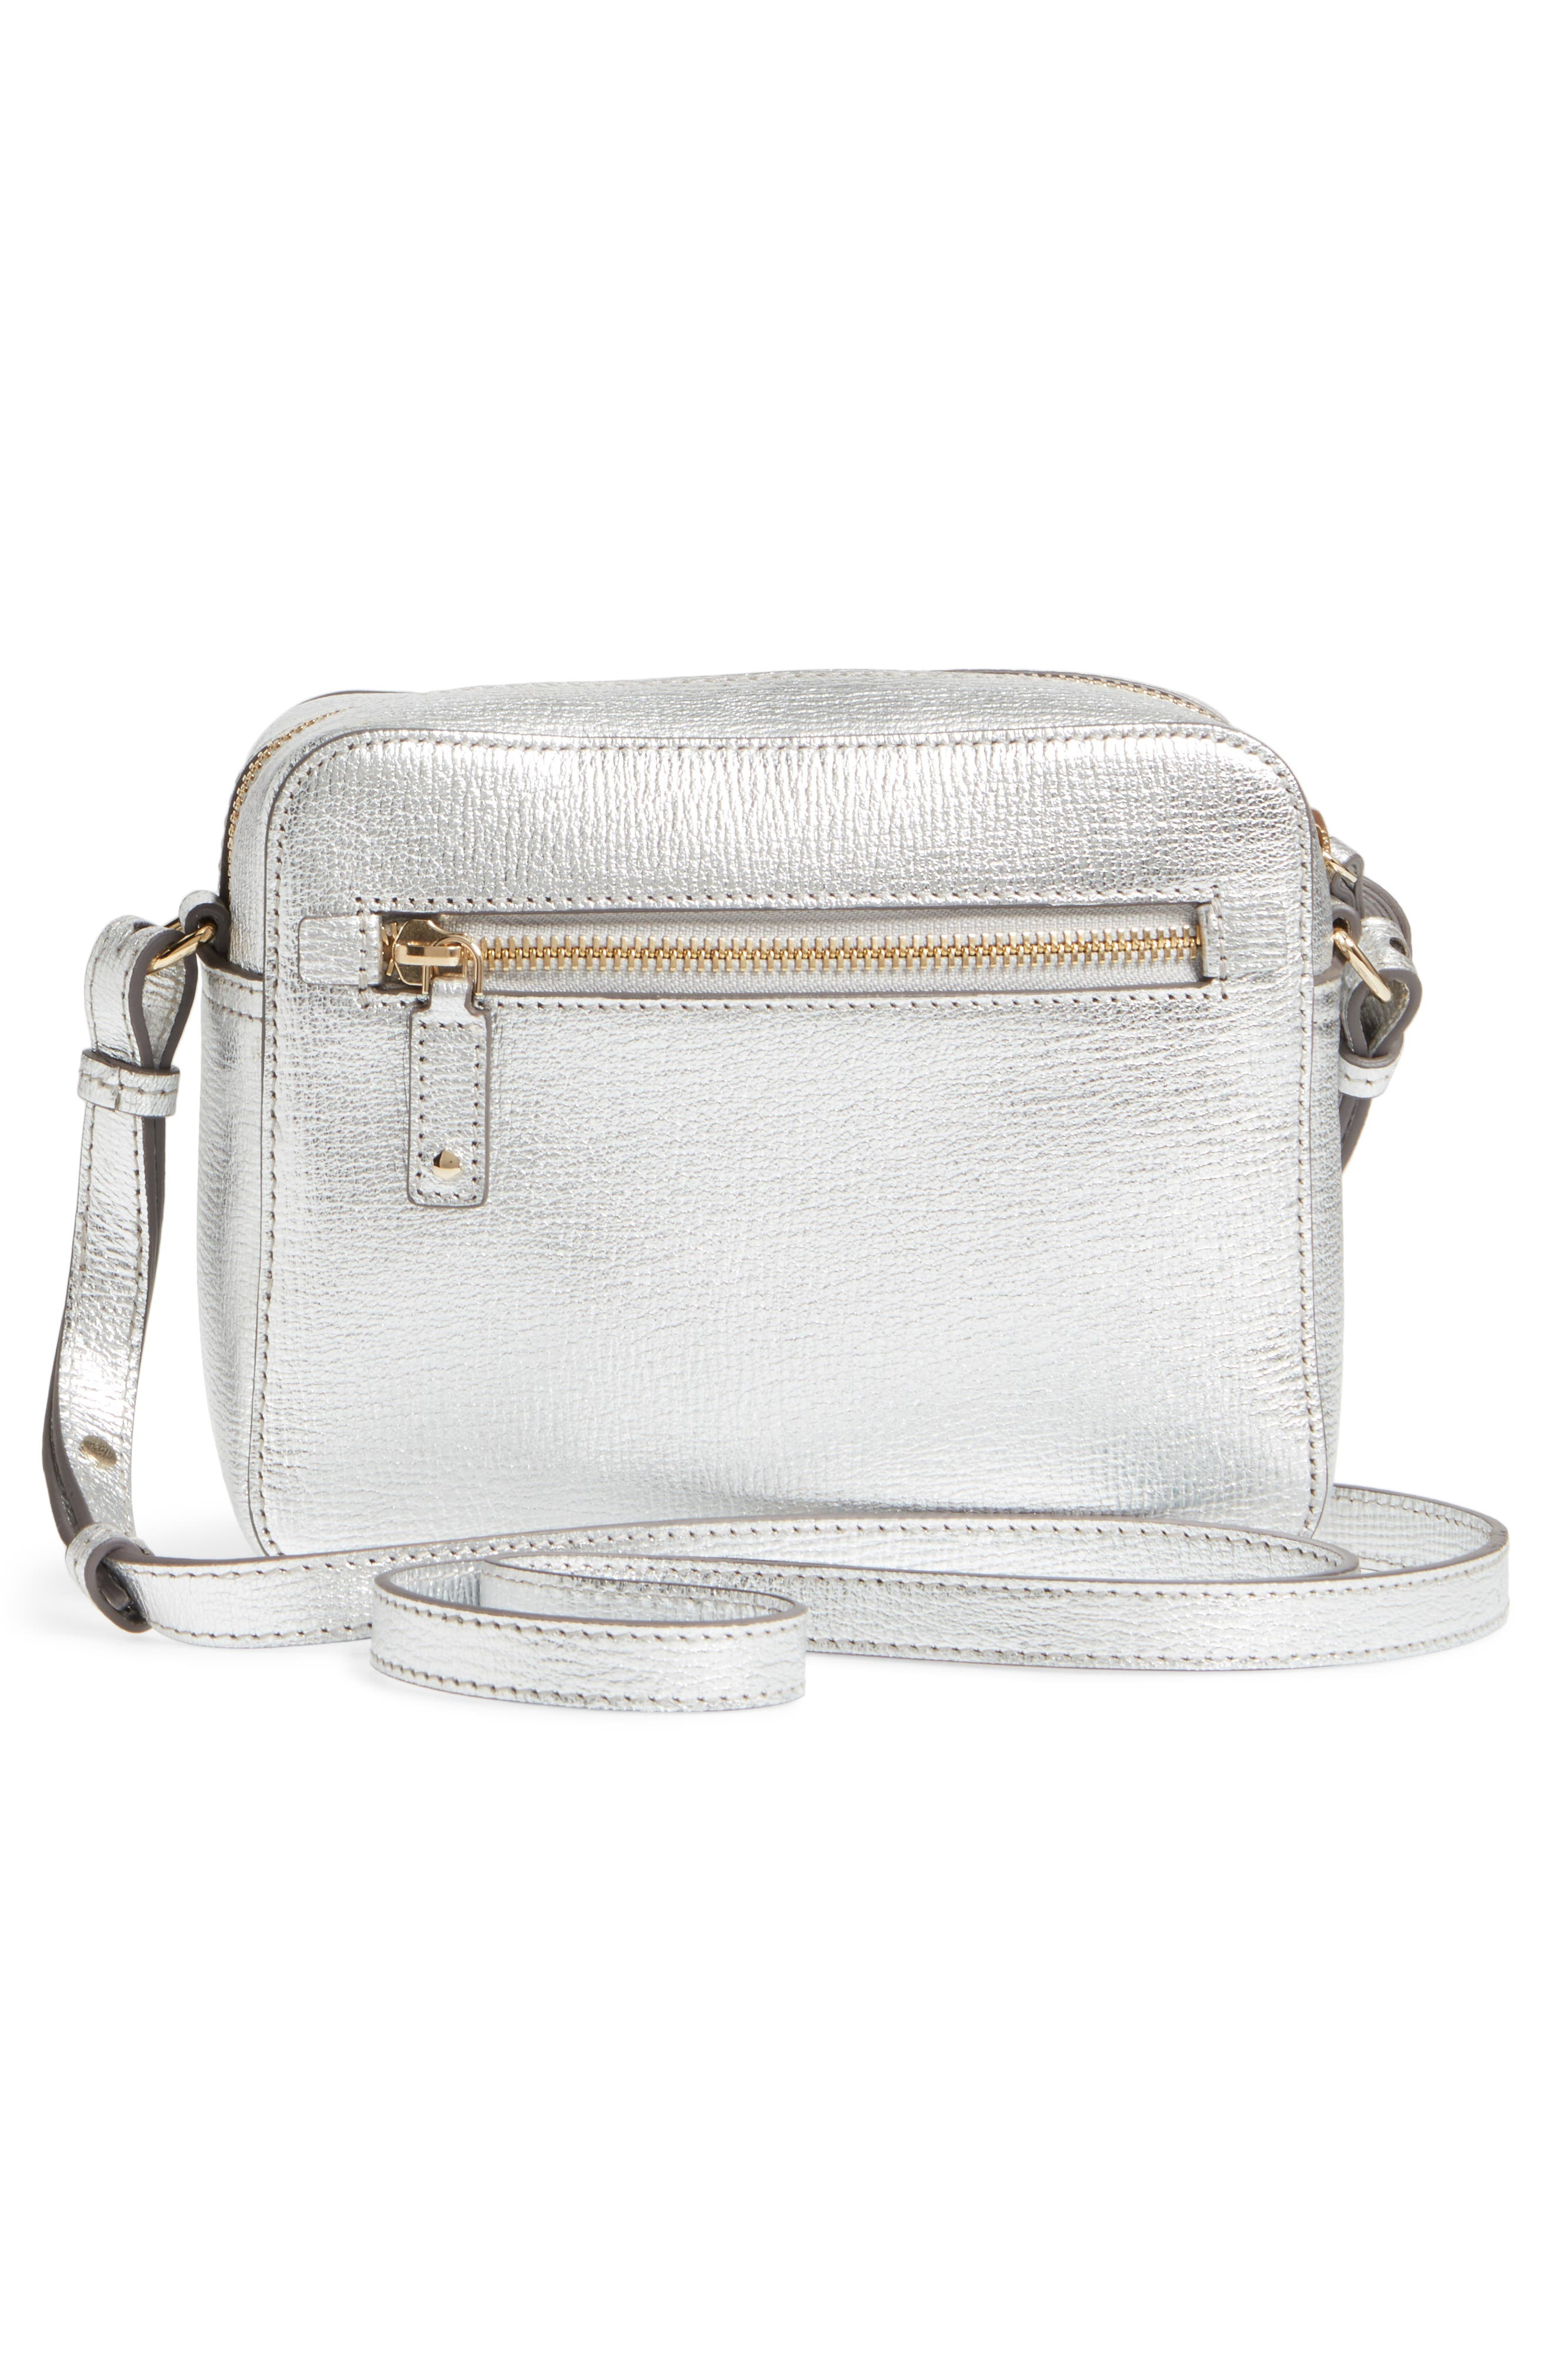 Smiley Metallic Leather Crossbody Bag,                             Alternate thumbnail 3, color,                             Silver